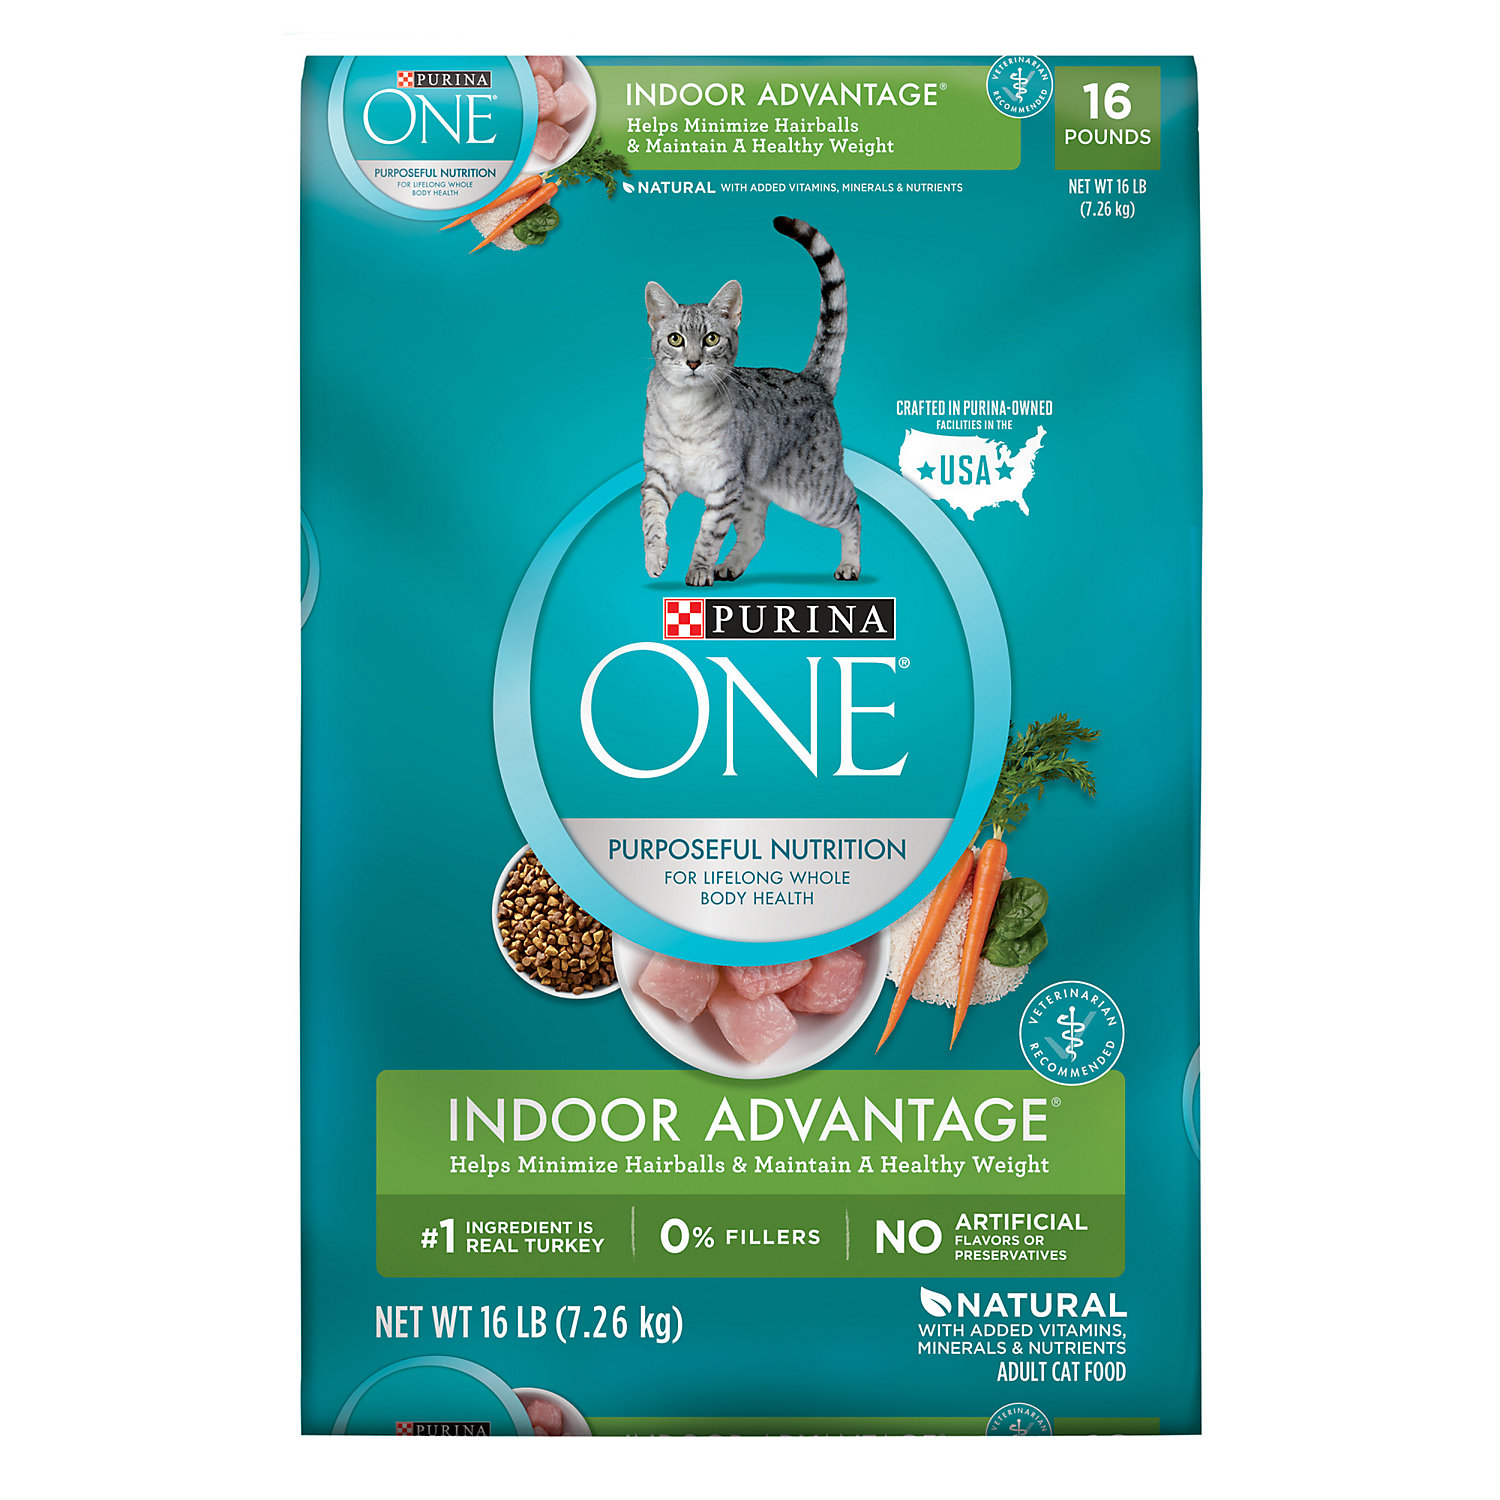 Purina One Indoor Advantage Hairball Healthy Weight Cat Food 16 Lbs.